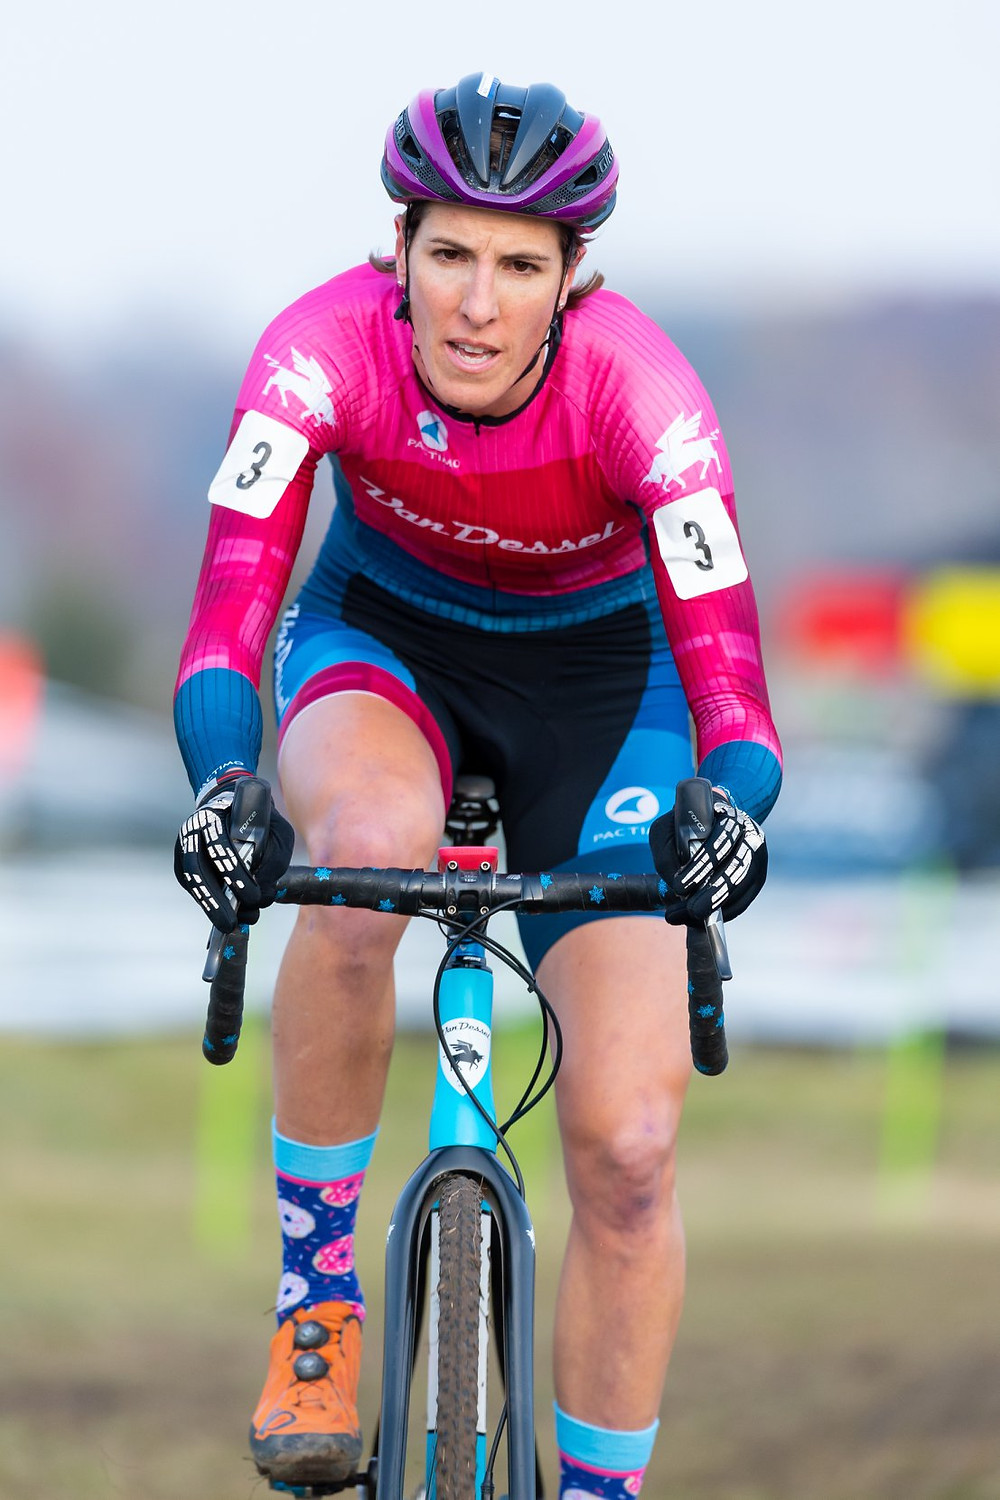 Total concentration at Major Taylor CX 2018